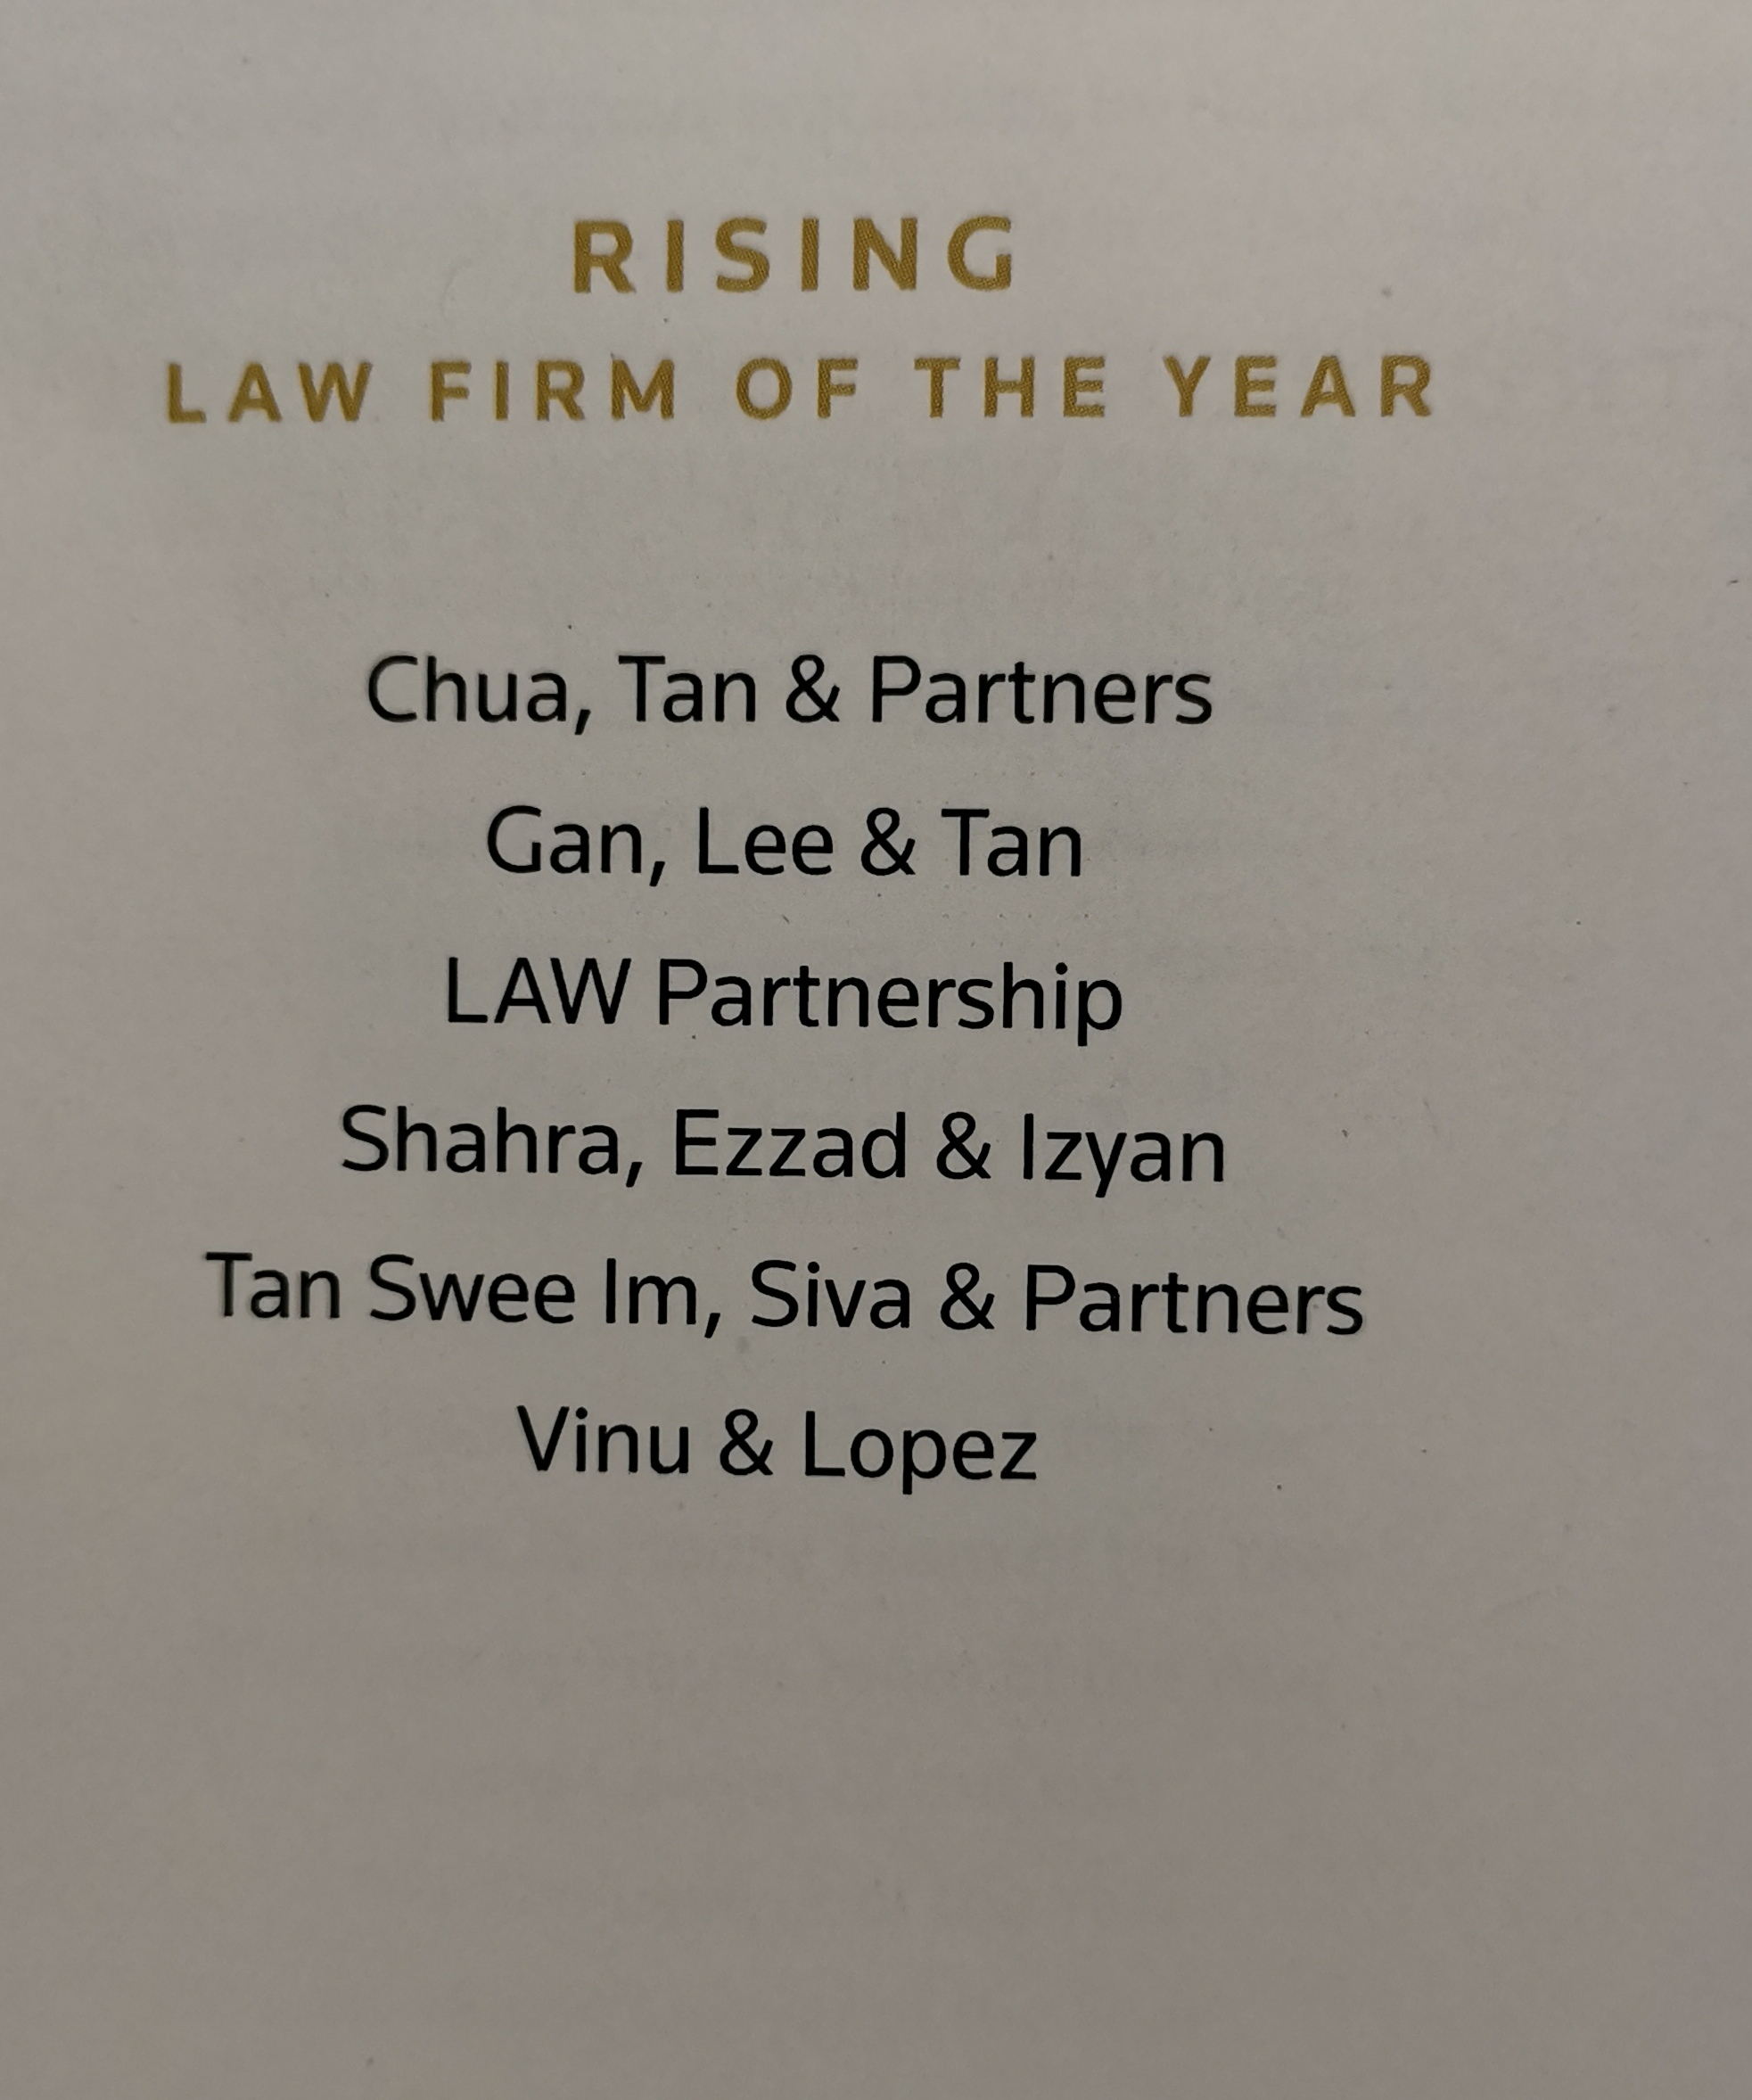 Nominees for Rising Law Firm of the Year